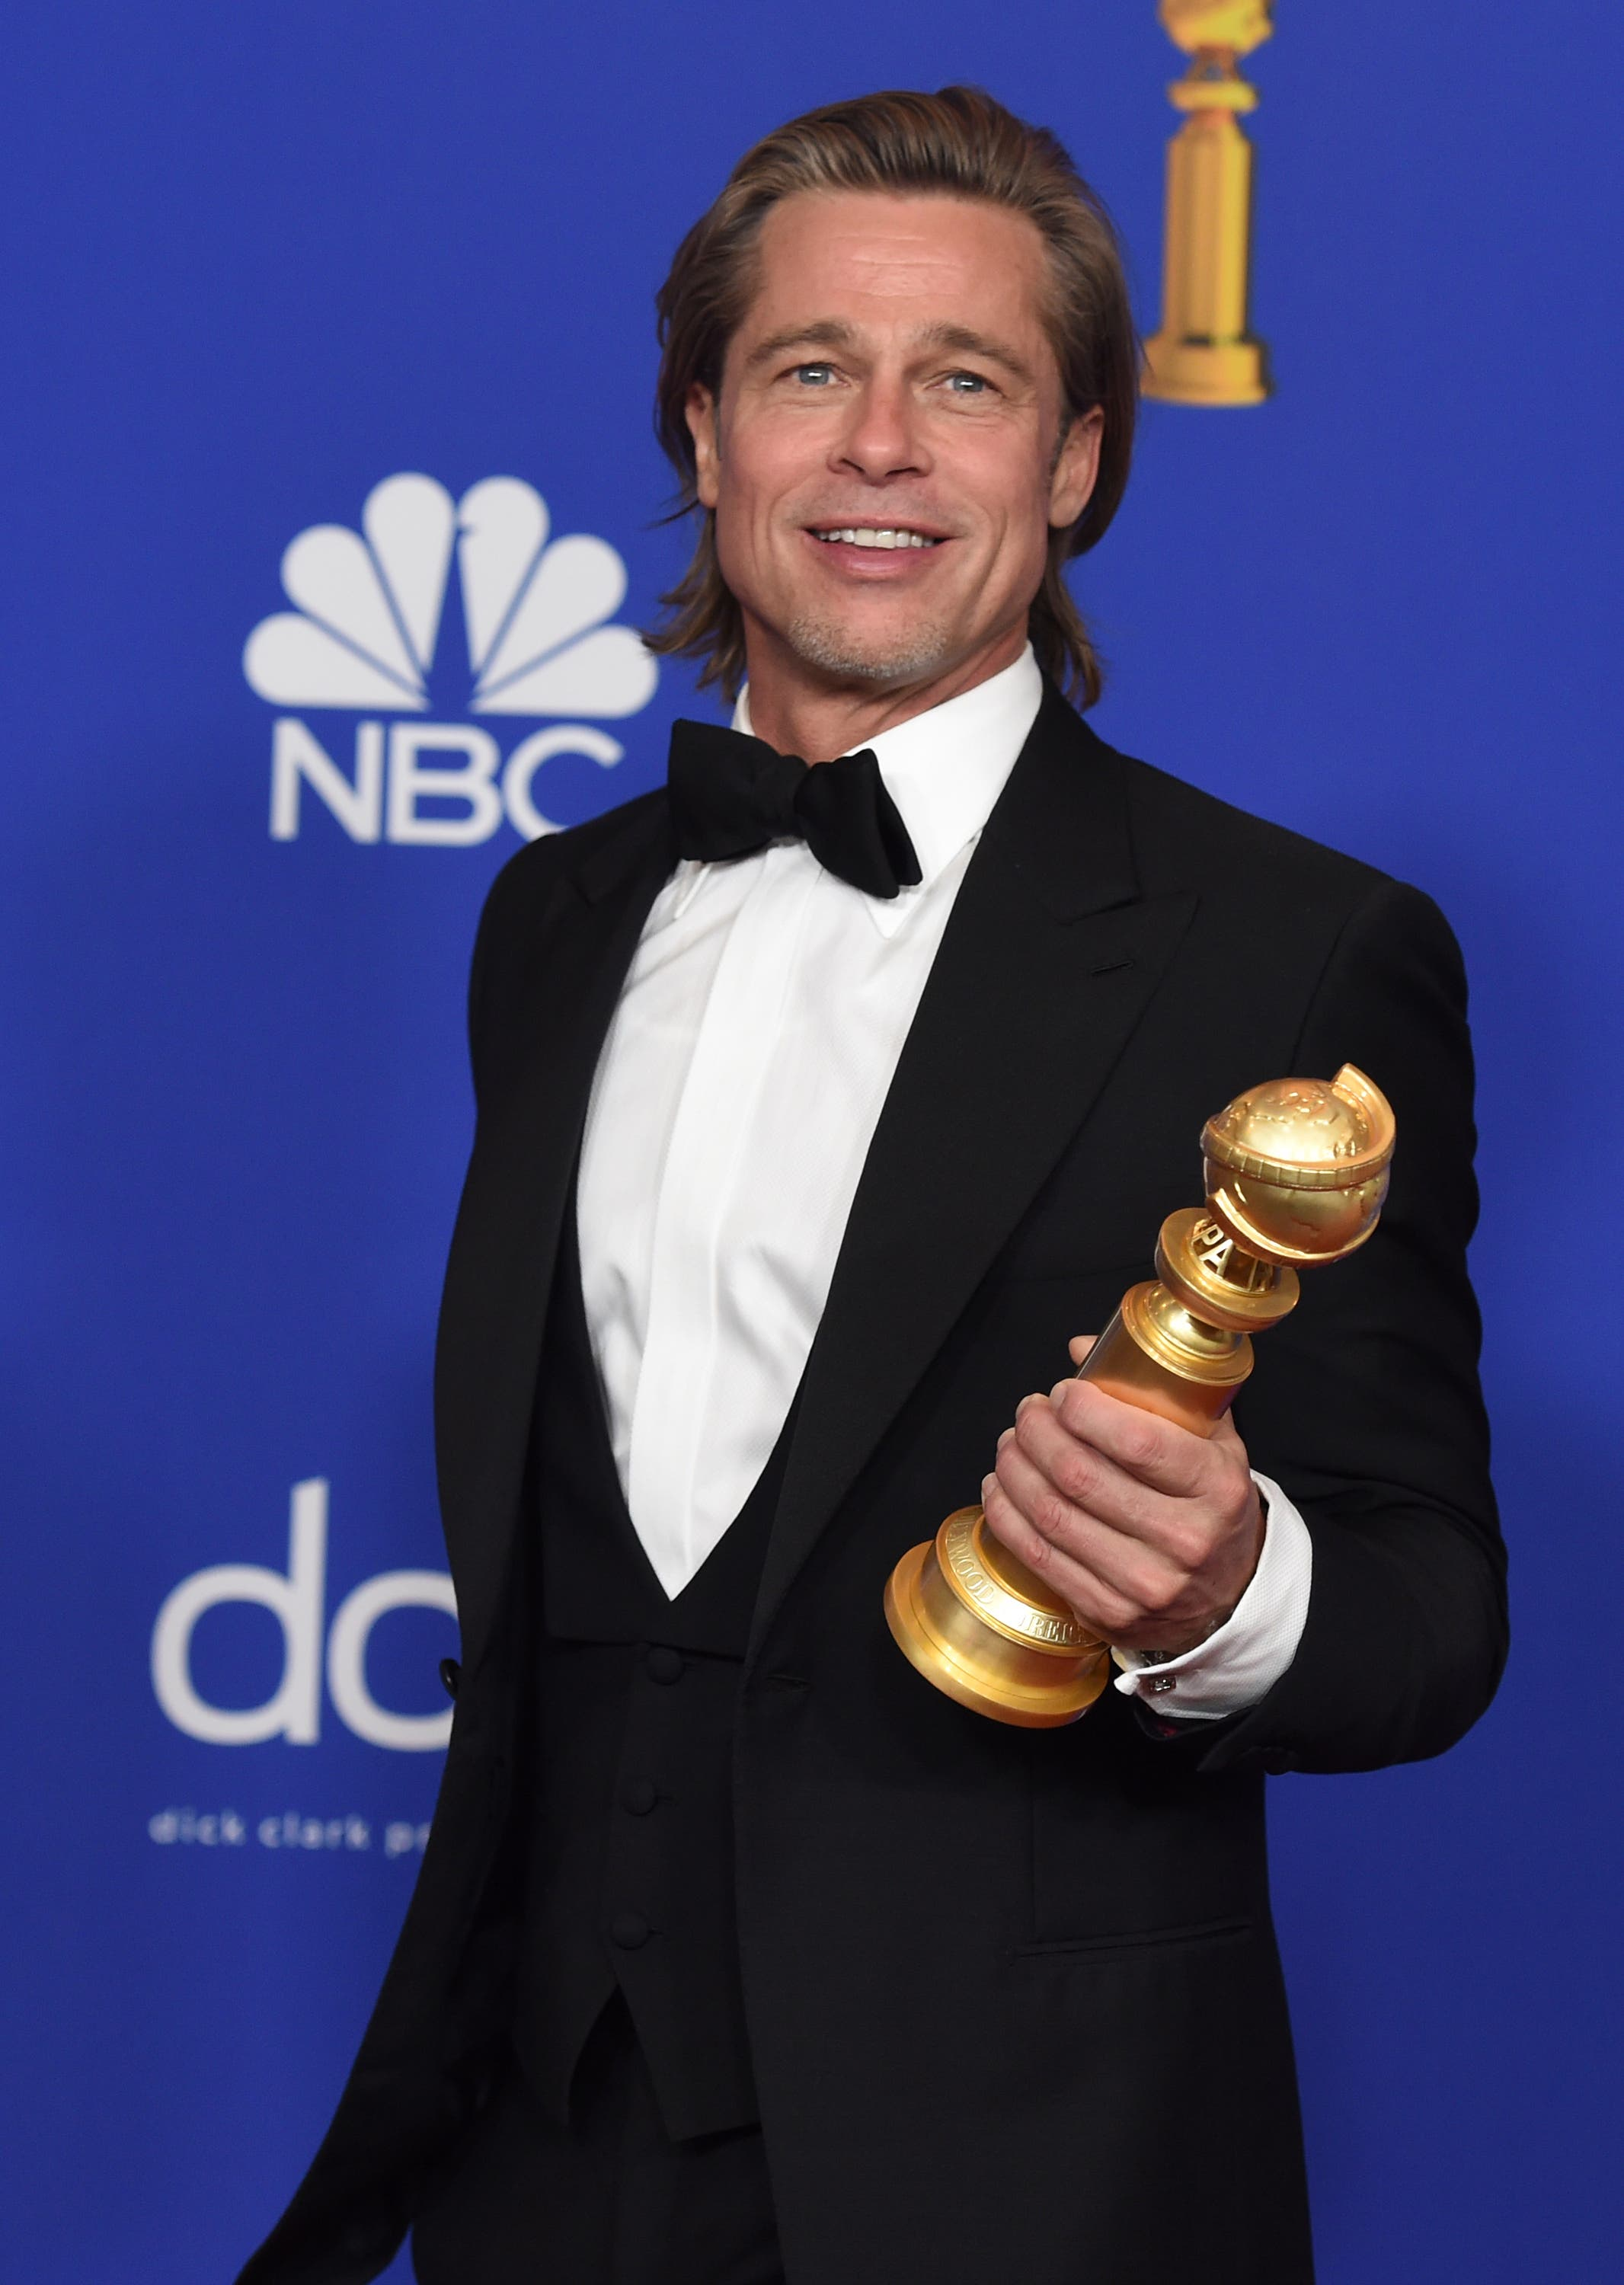 Brad Pitt poses in the press room with the award for best performance by an actor in a supporting role in any motion picture for Once Upon a Time...in Hollywood at the 77th annual Golden Globe Awards at the Beverly Hilton Hotel on Sunday, Jan. 5, 2020. (AP)